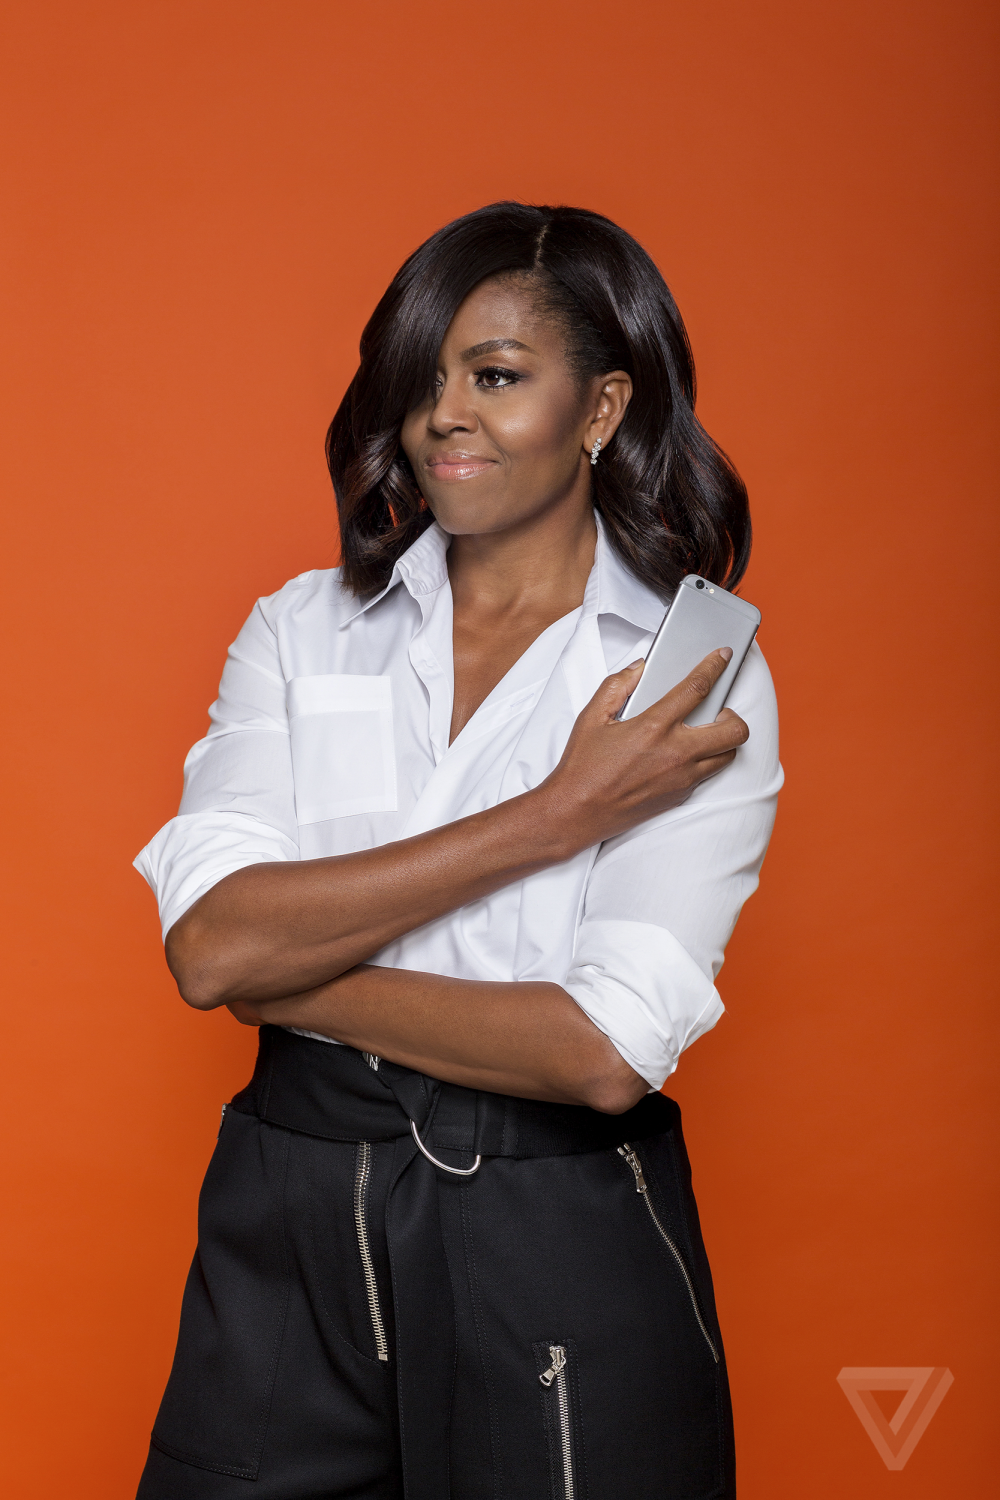 MICHELLE OBAMA THE VERGE1